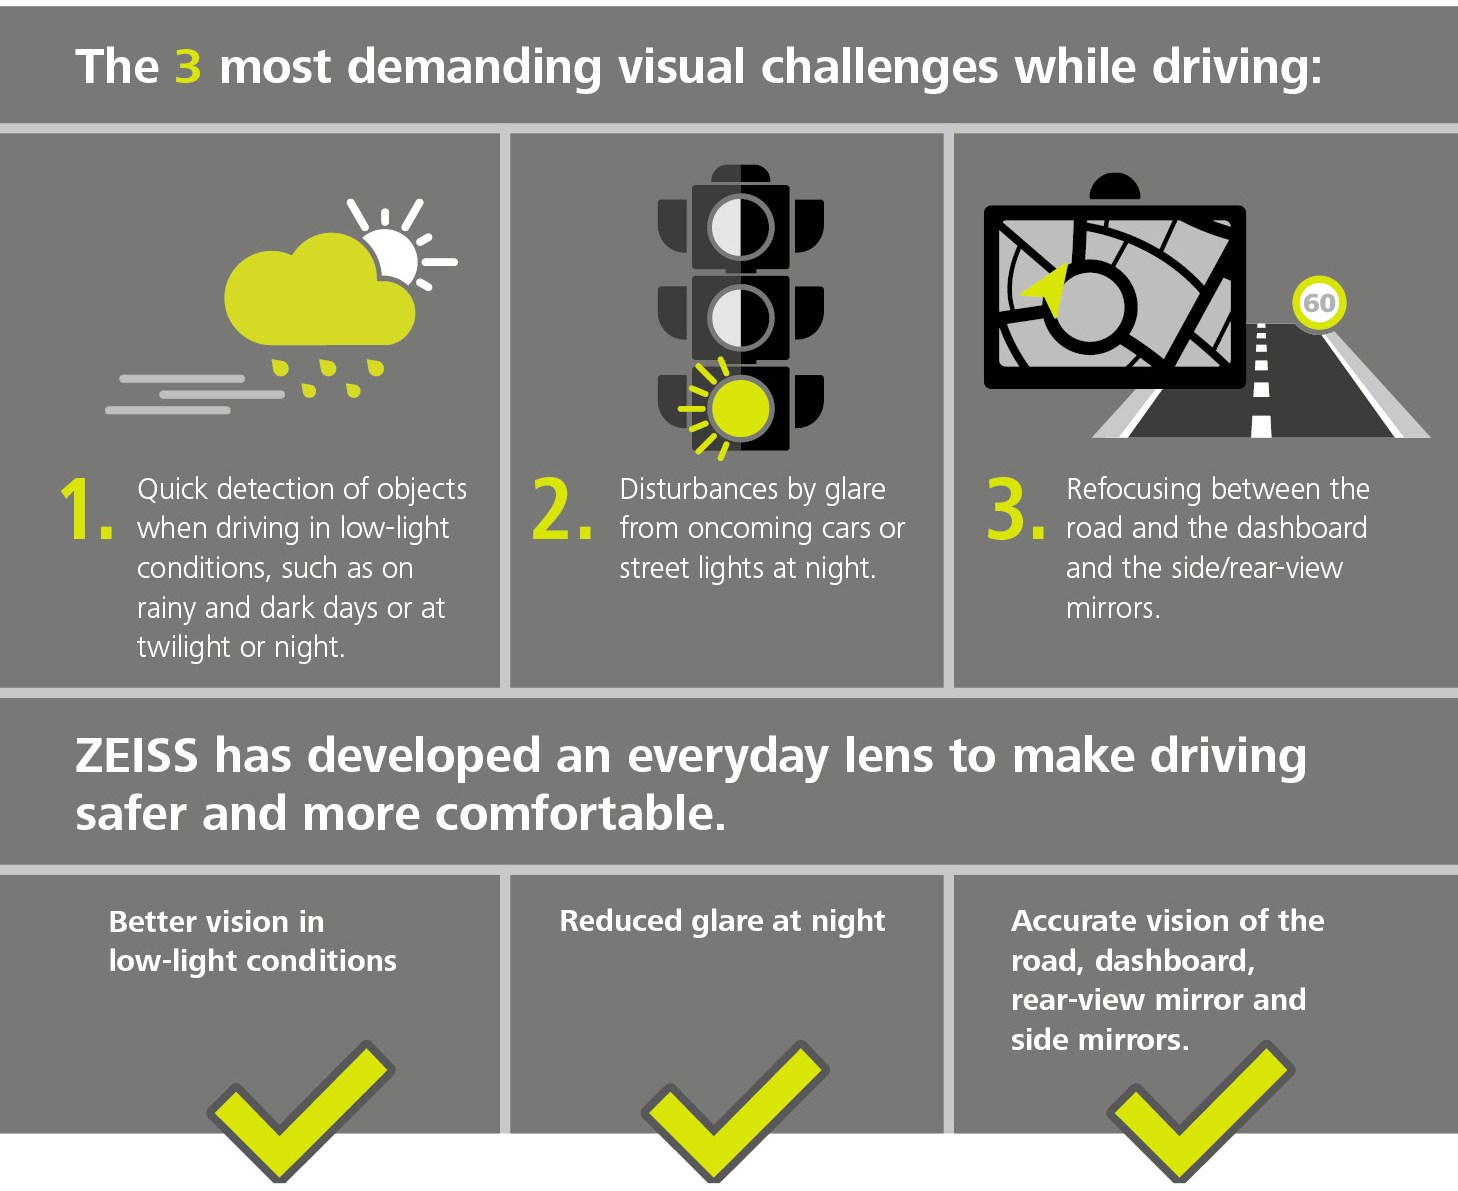 ZEISS_DriveSafe_LAM_Infographic_247x723mm